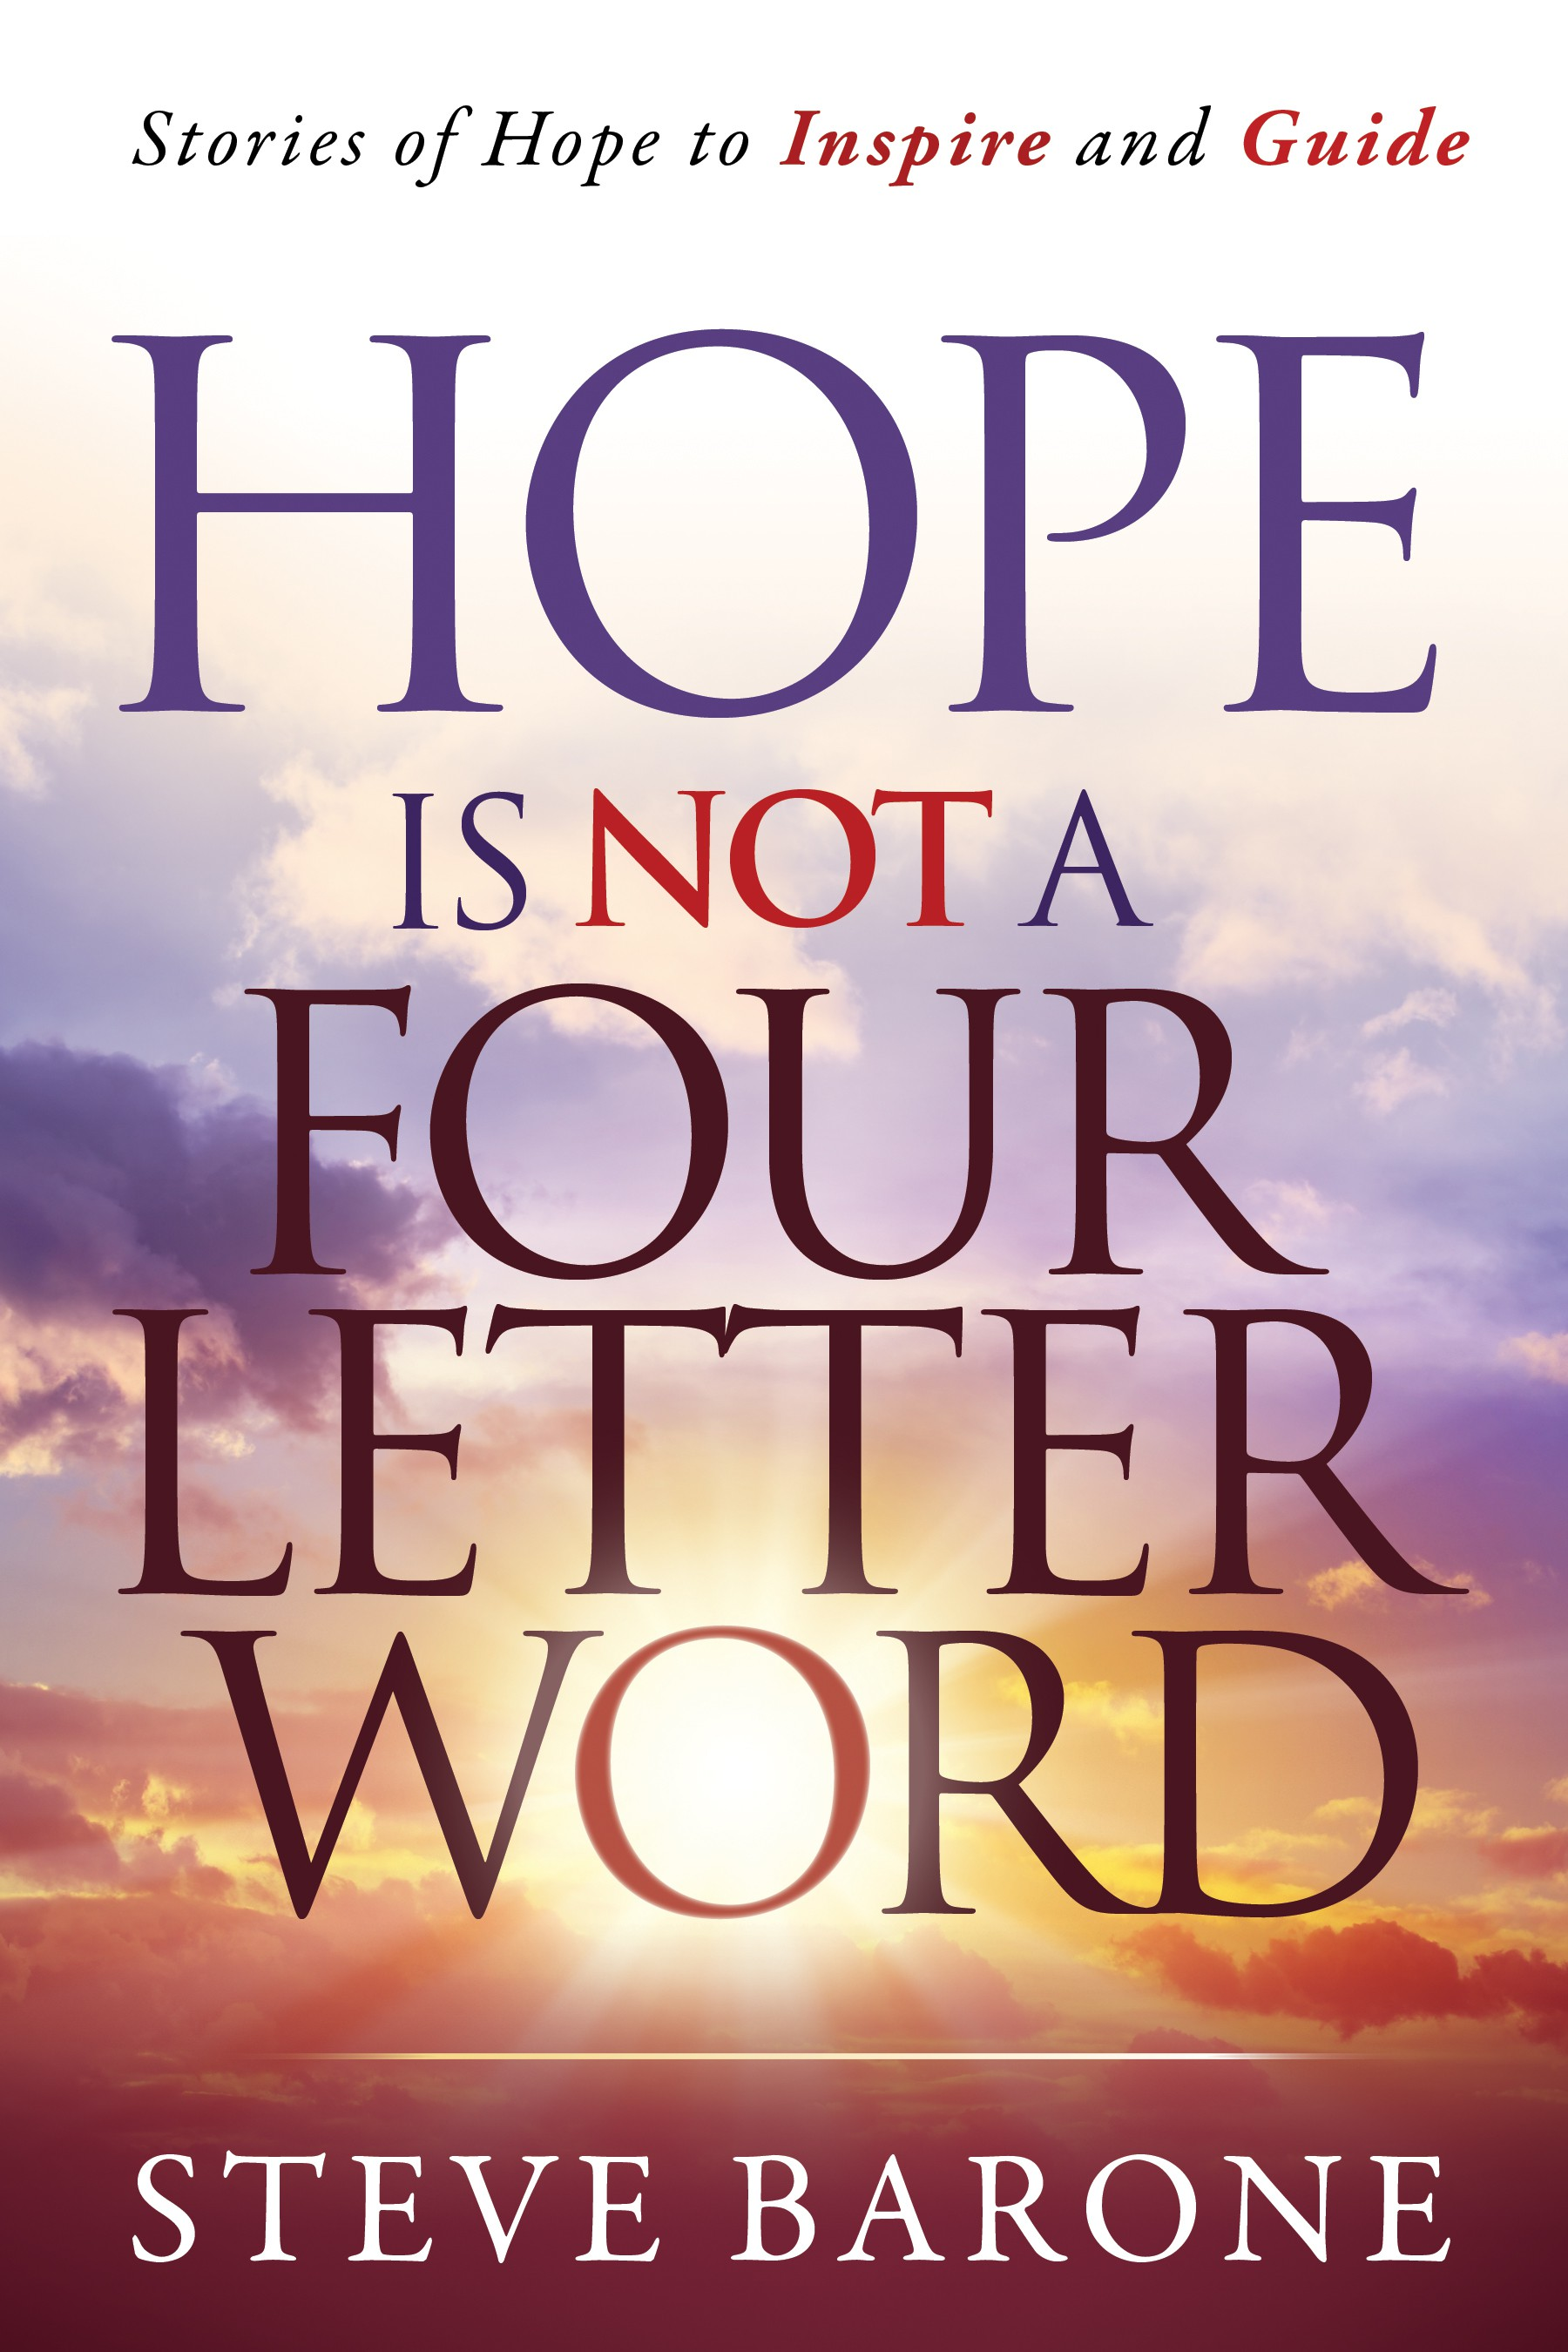 HOPE Needs an Awesome Image - Create HOPE